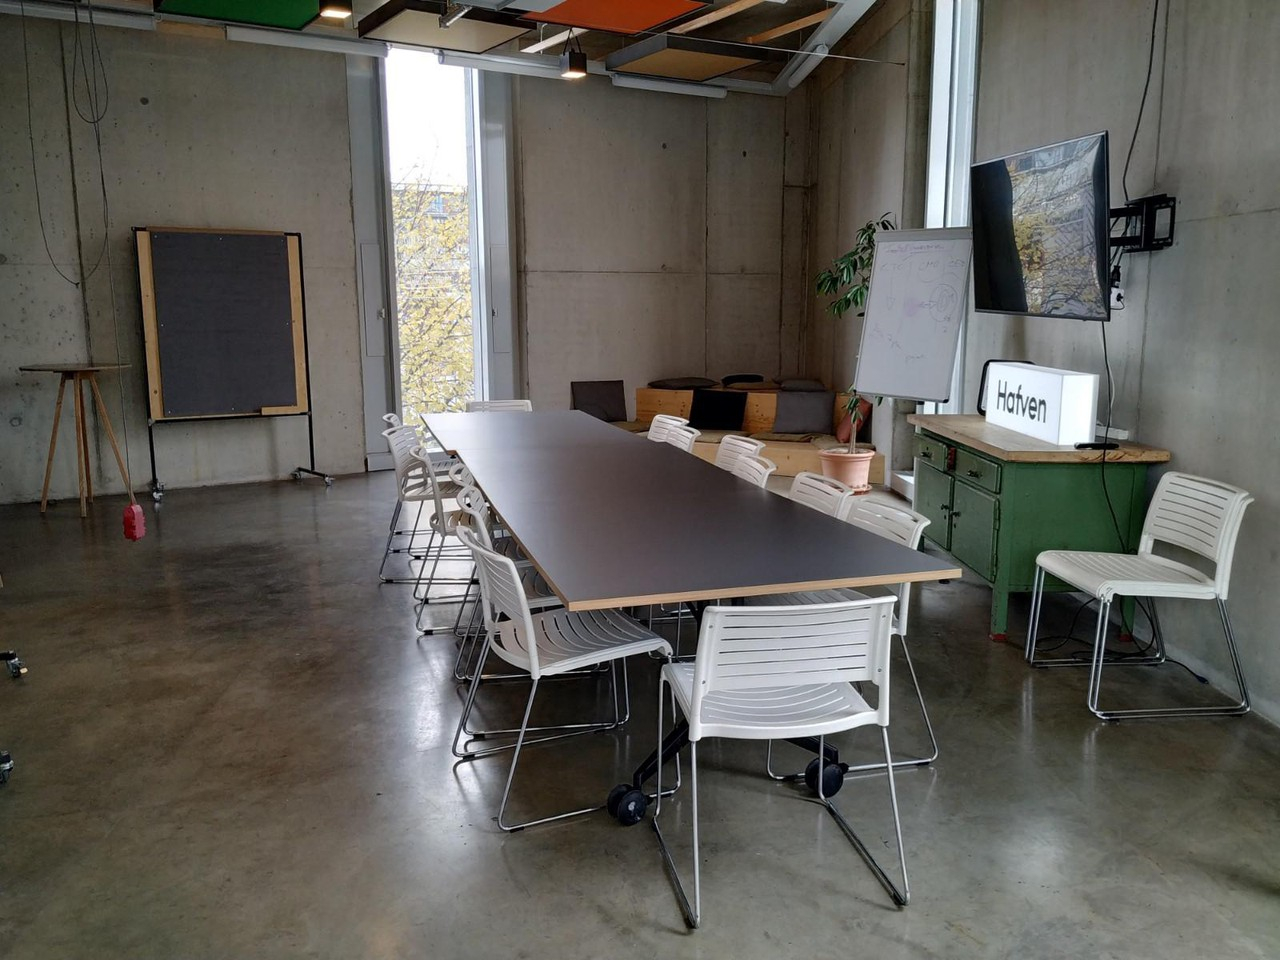 Hannover training rooms Meeting room workshop room image 2